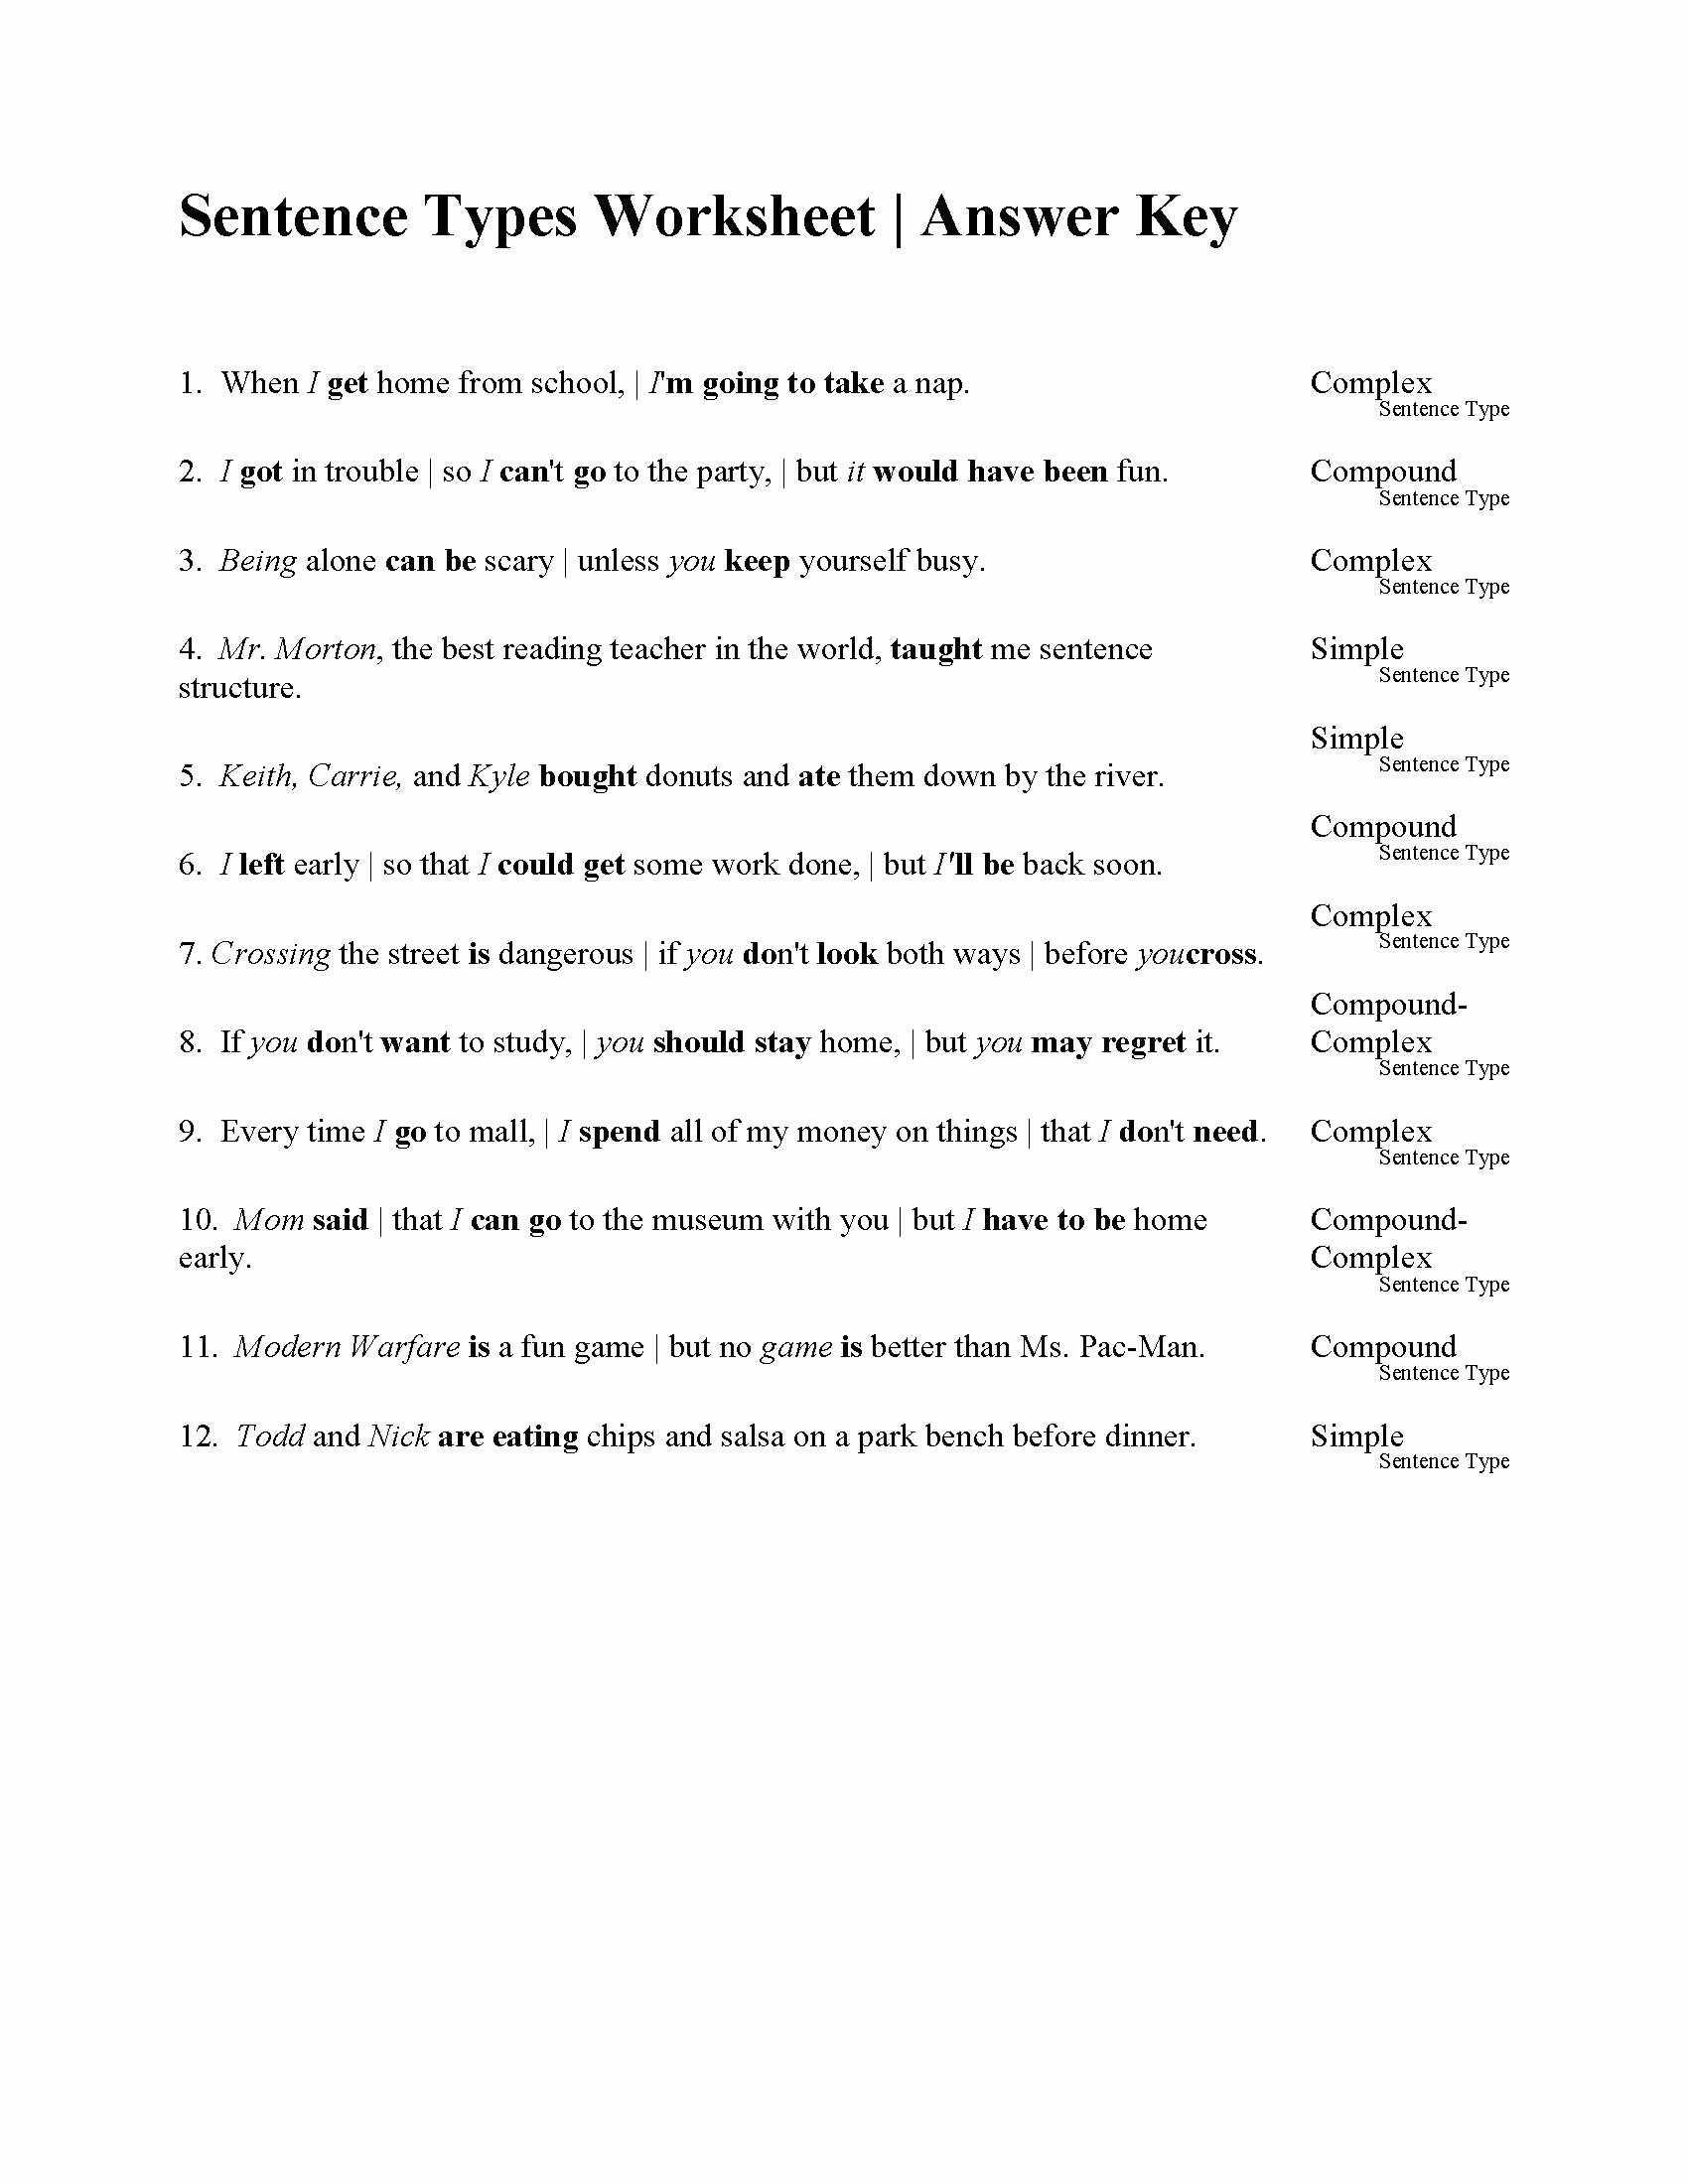 Compound Sentences Worksheet with Answers top Sentences Types Worksheet